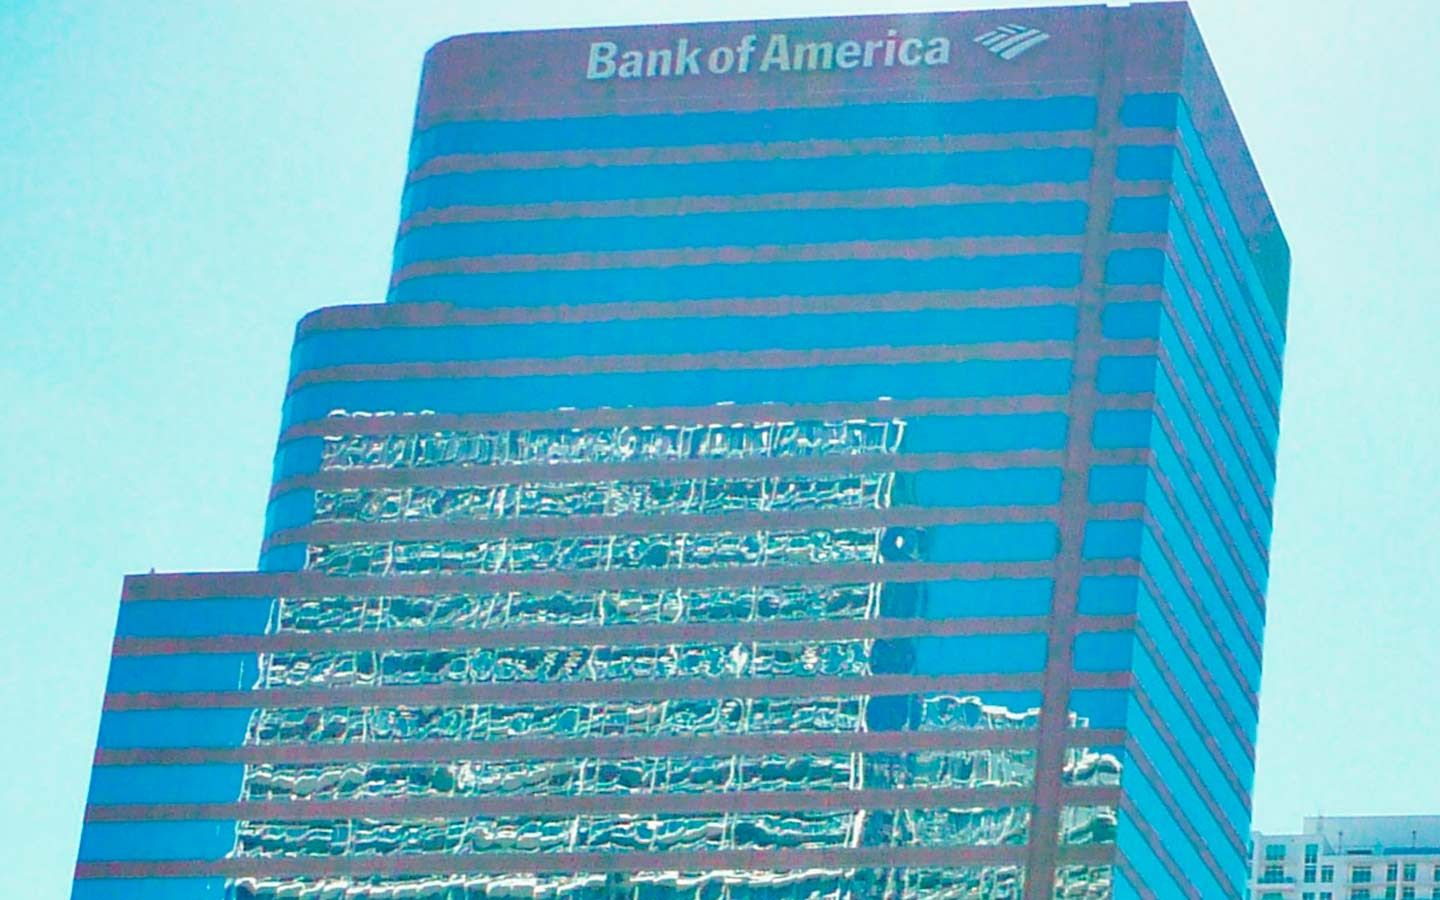 Bank of America Brickell Avenue